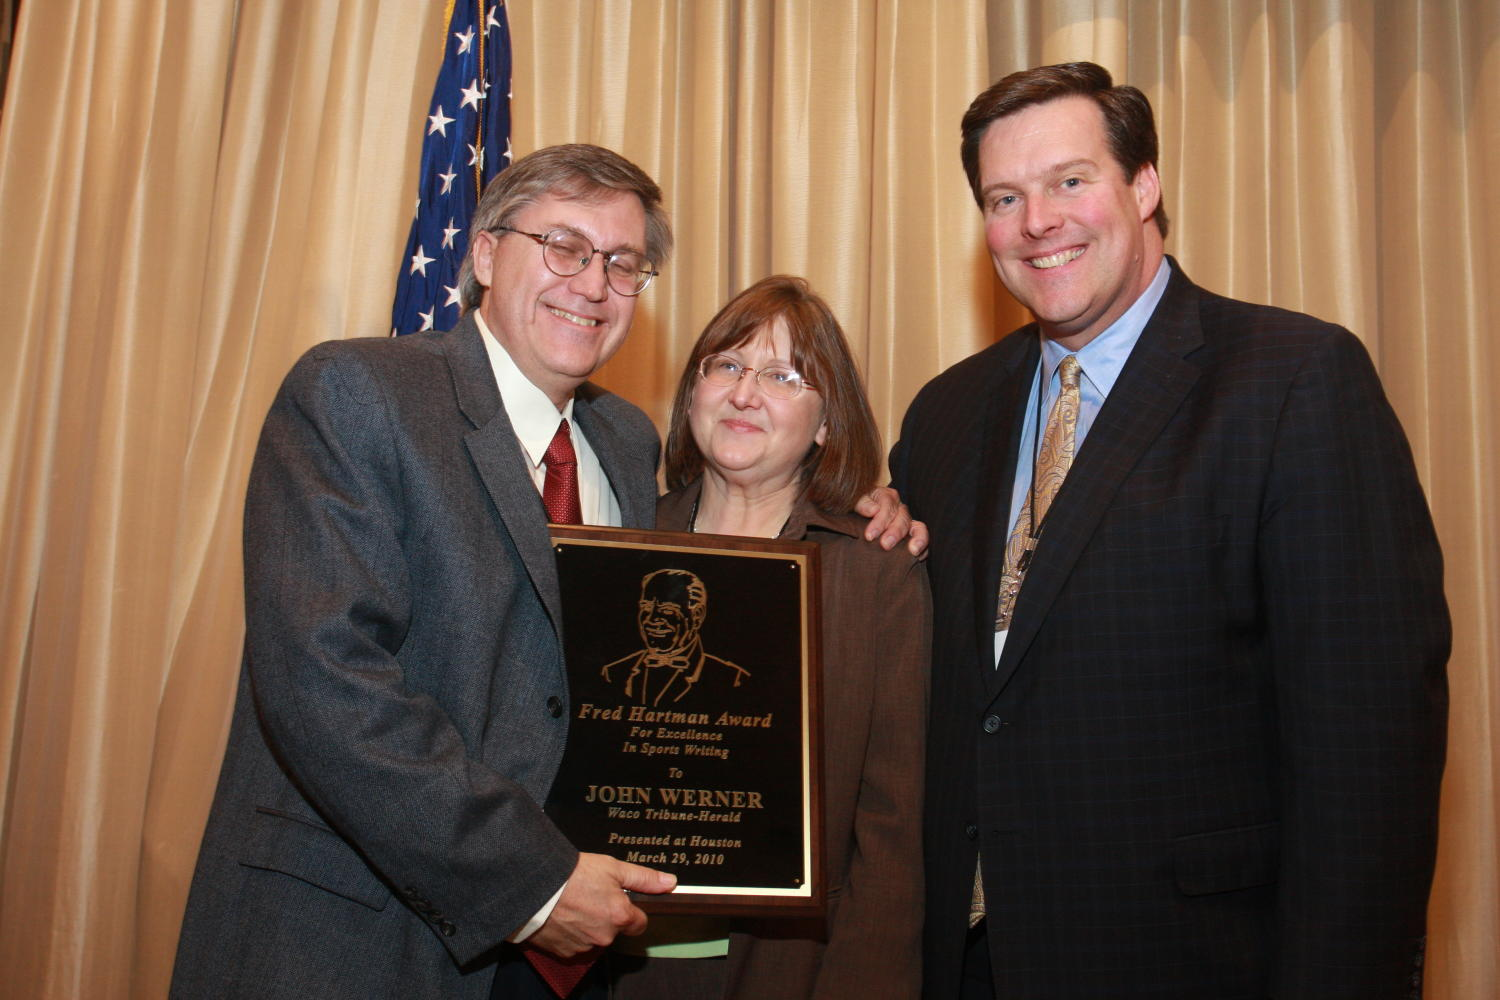 "[Nelson Clyde IV giving an award to John Werner], Photograph of Nelson Clyde IV (right) presenting an award to John Werner (left) and his wife, (center) at the 2010 Texas Daily Newspaper Association annual meeting held in Houston, Texas. The award reads, ""Fred Hartman Award for Excellence in Sports Writing to John Werner Waco Tribune-Herald presented at Houston, March 29, 2010."","